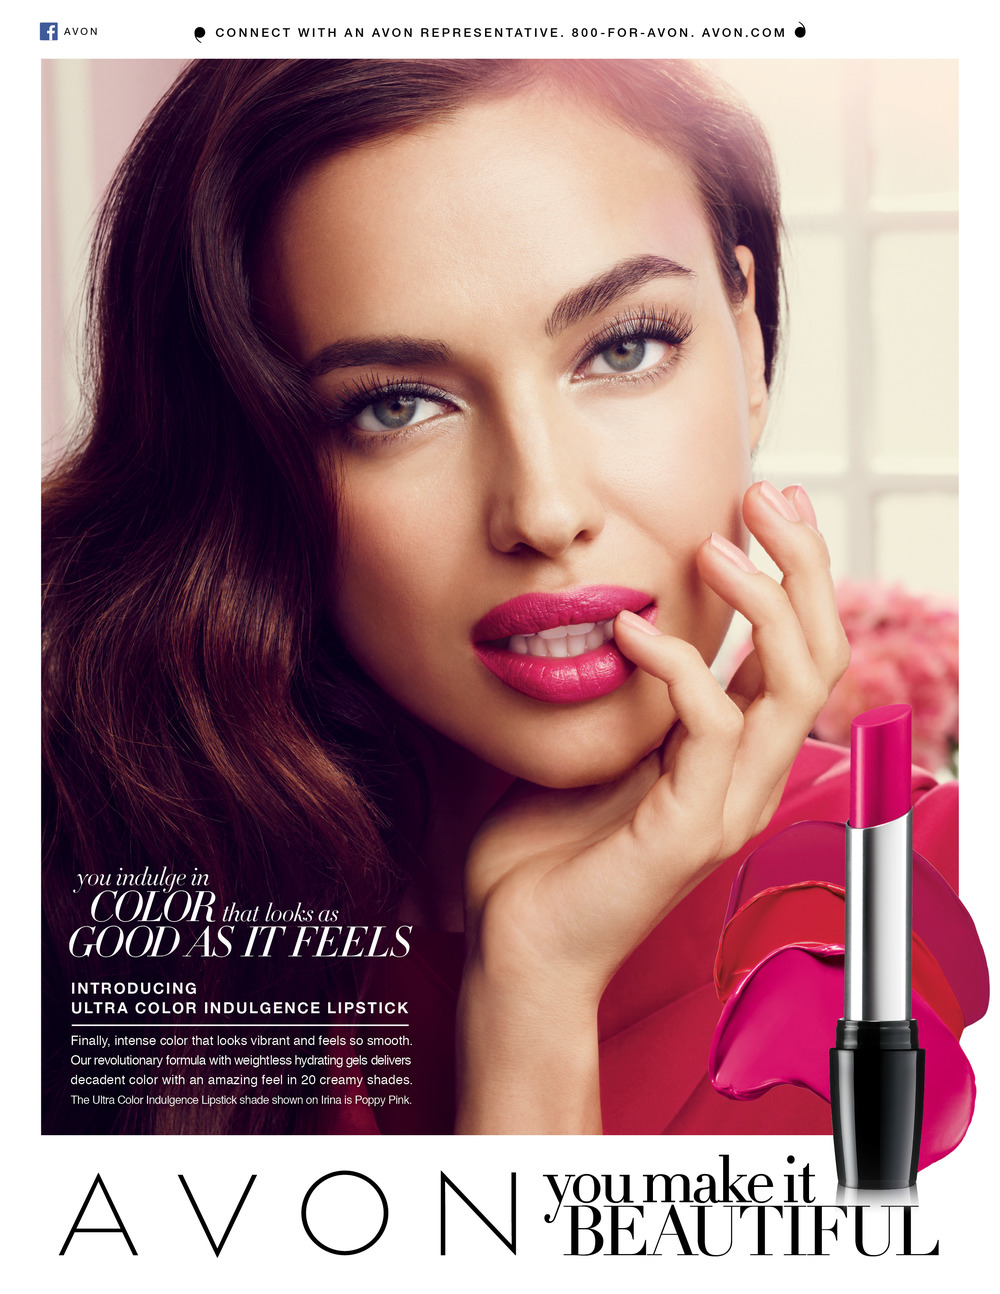 AVON_UC_Indulgence_SINGLE_102014.jpg